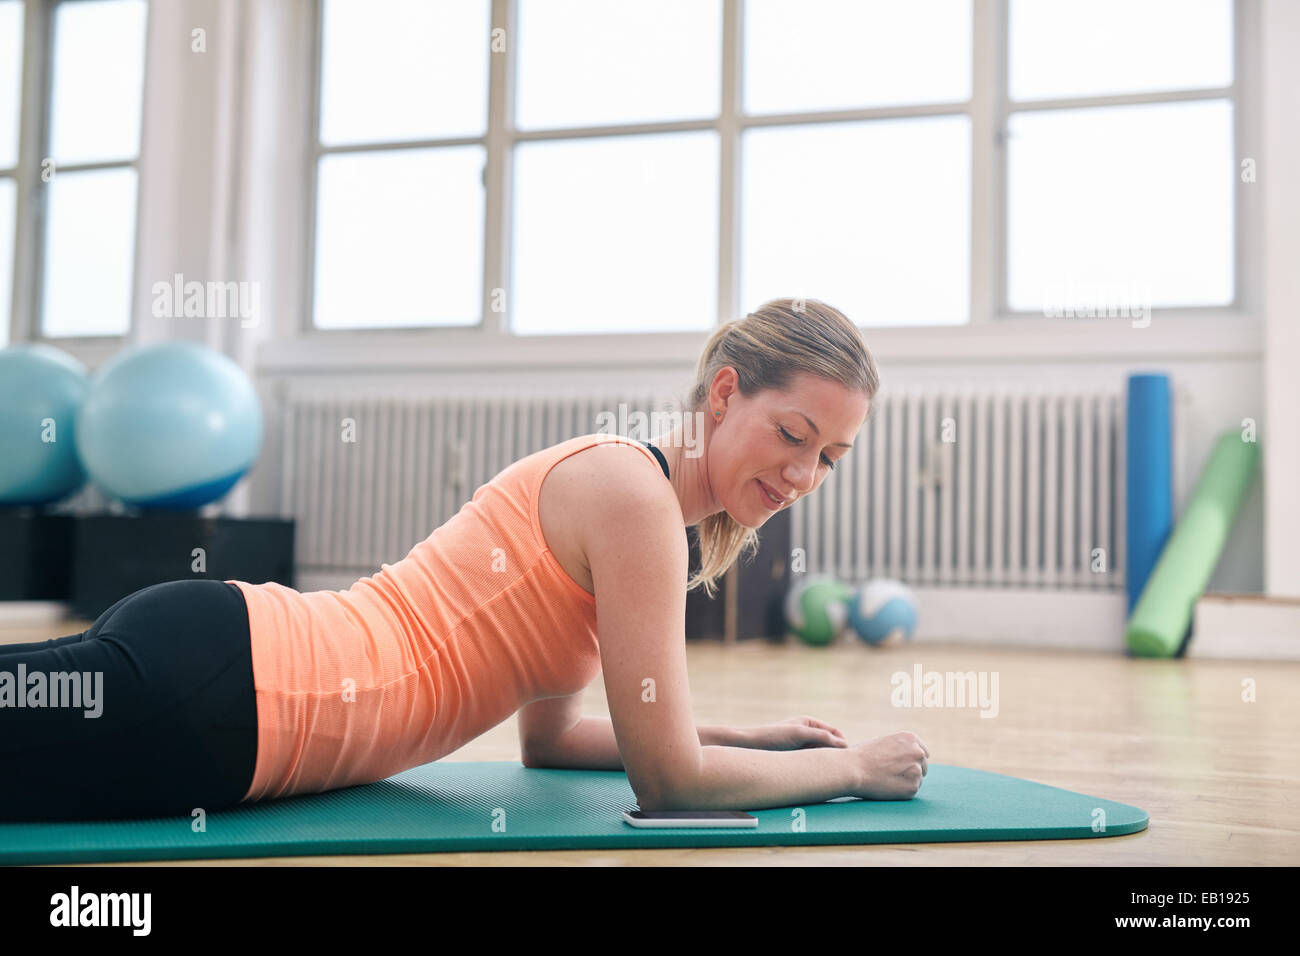 Fitness woman lying on exercise mat looking at her mobile phone. Caucasian woman using smart phone while exercising - Stock Image